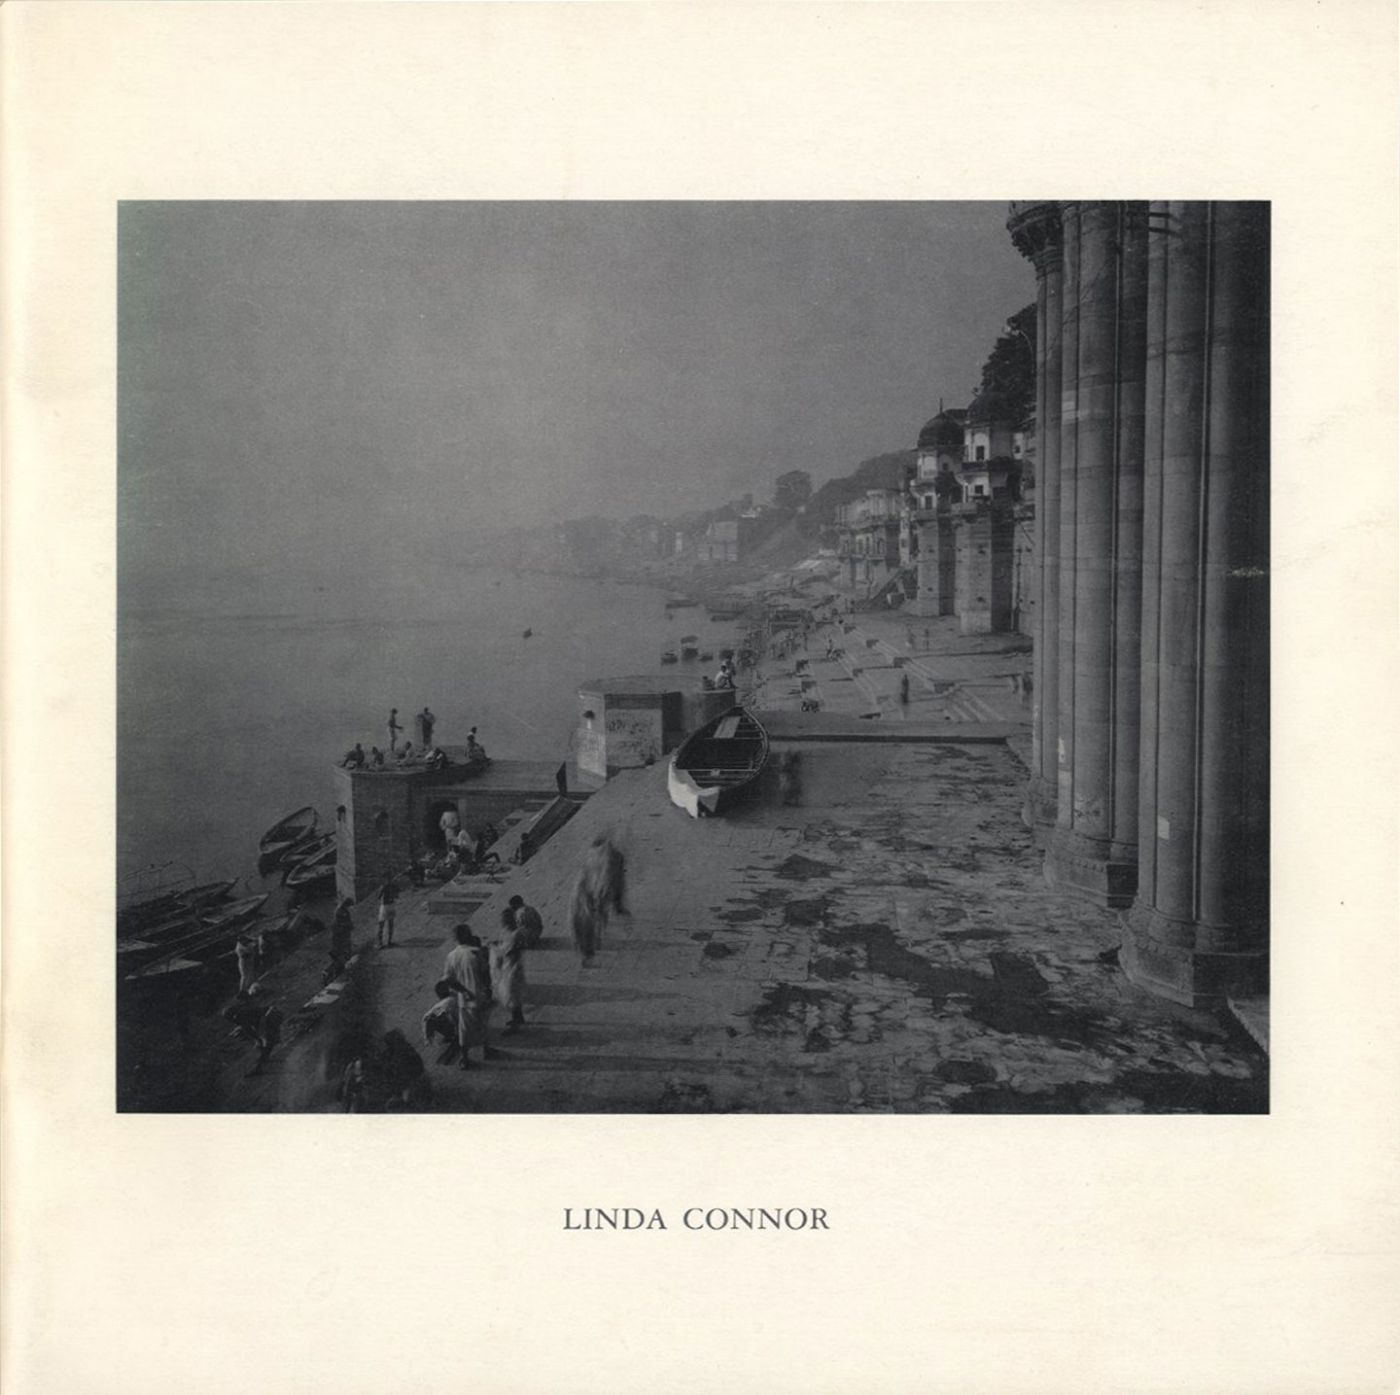 Linda Connor (The Corcoran Gallery of Art)